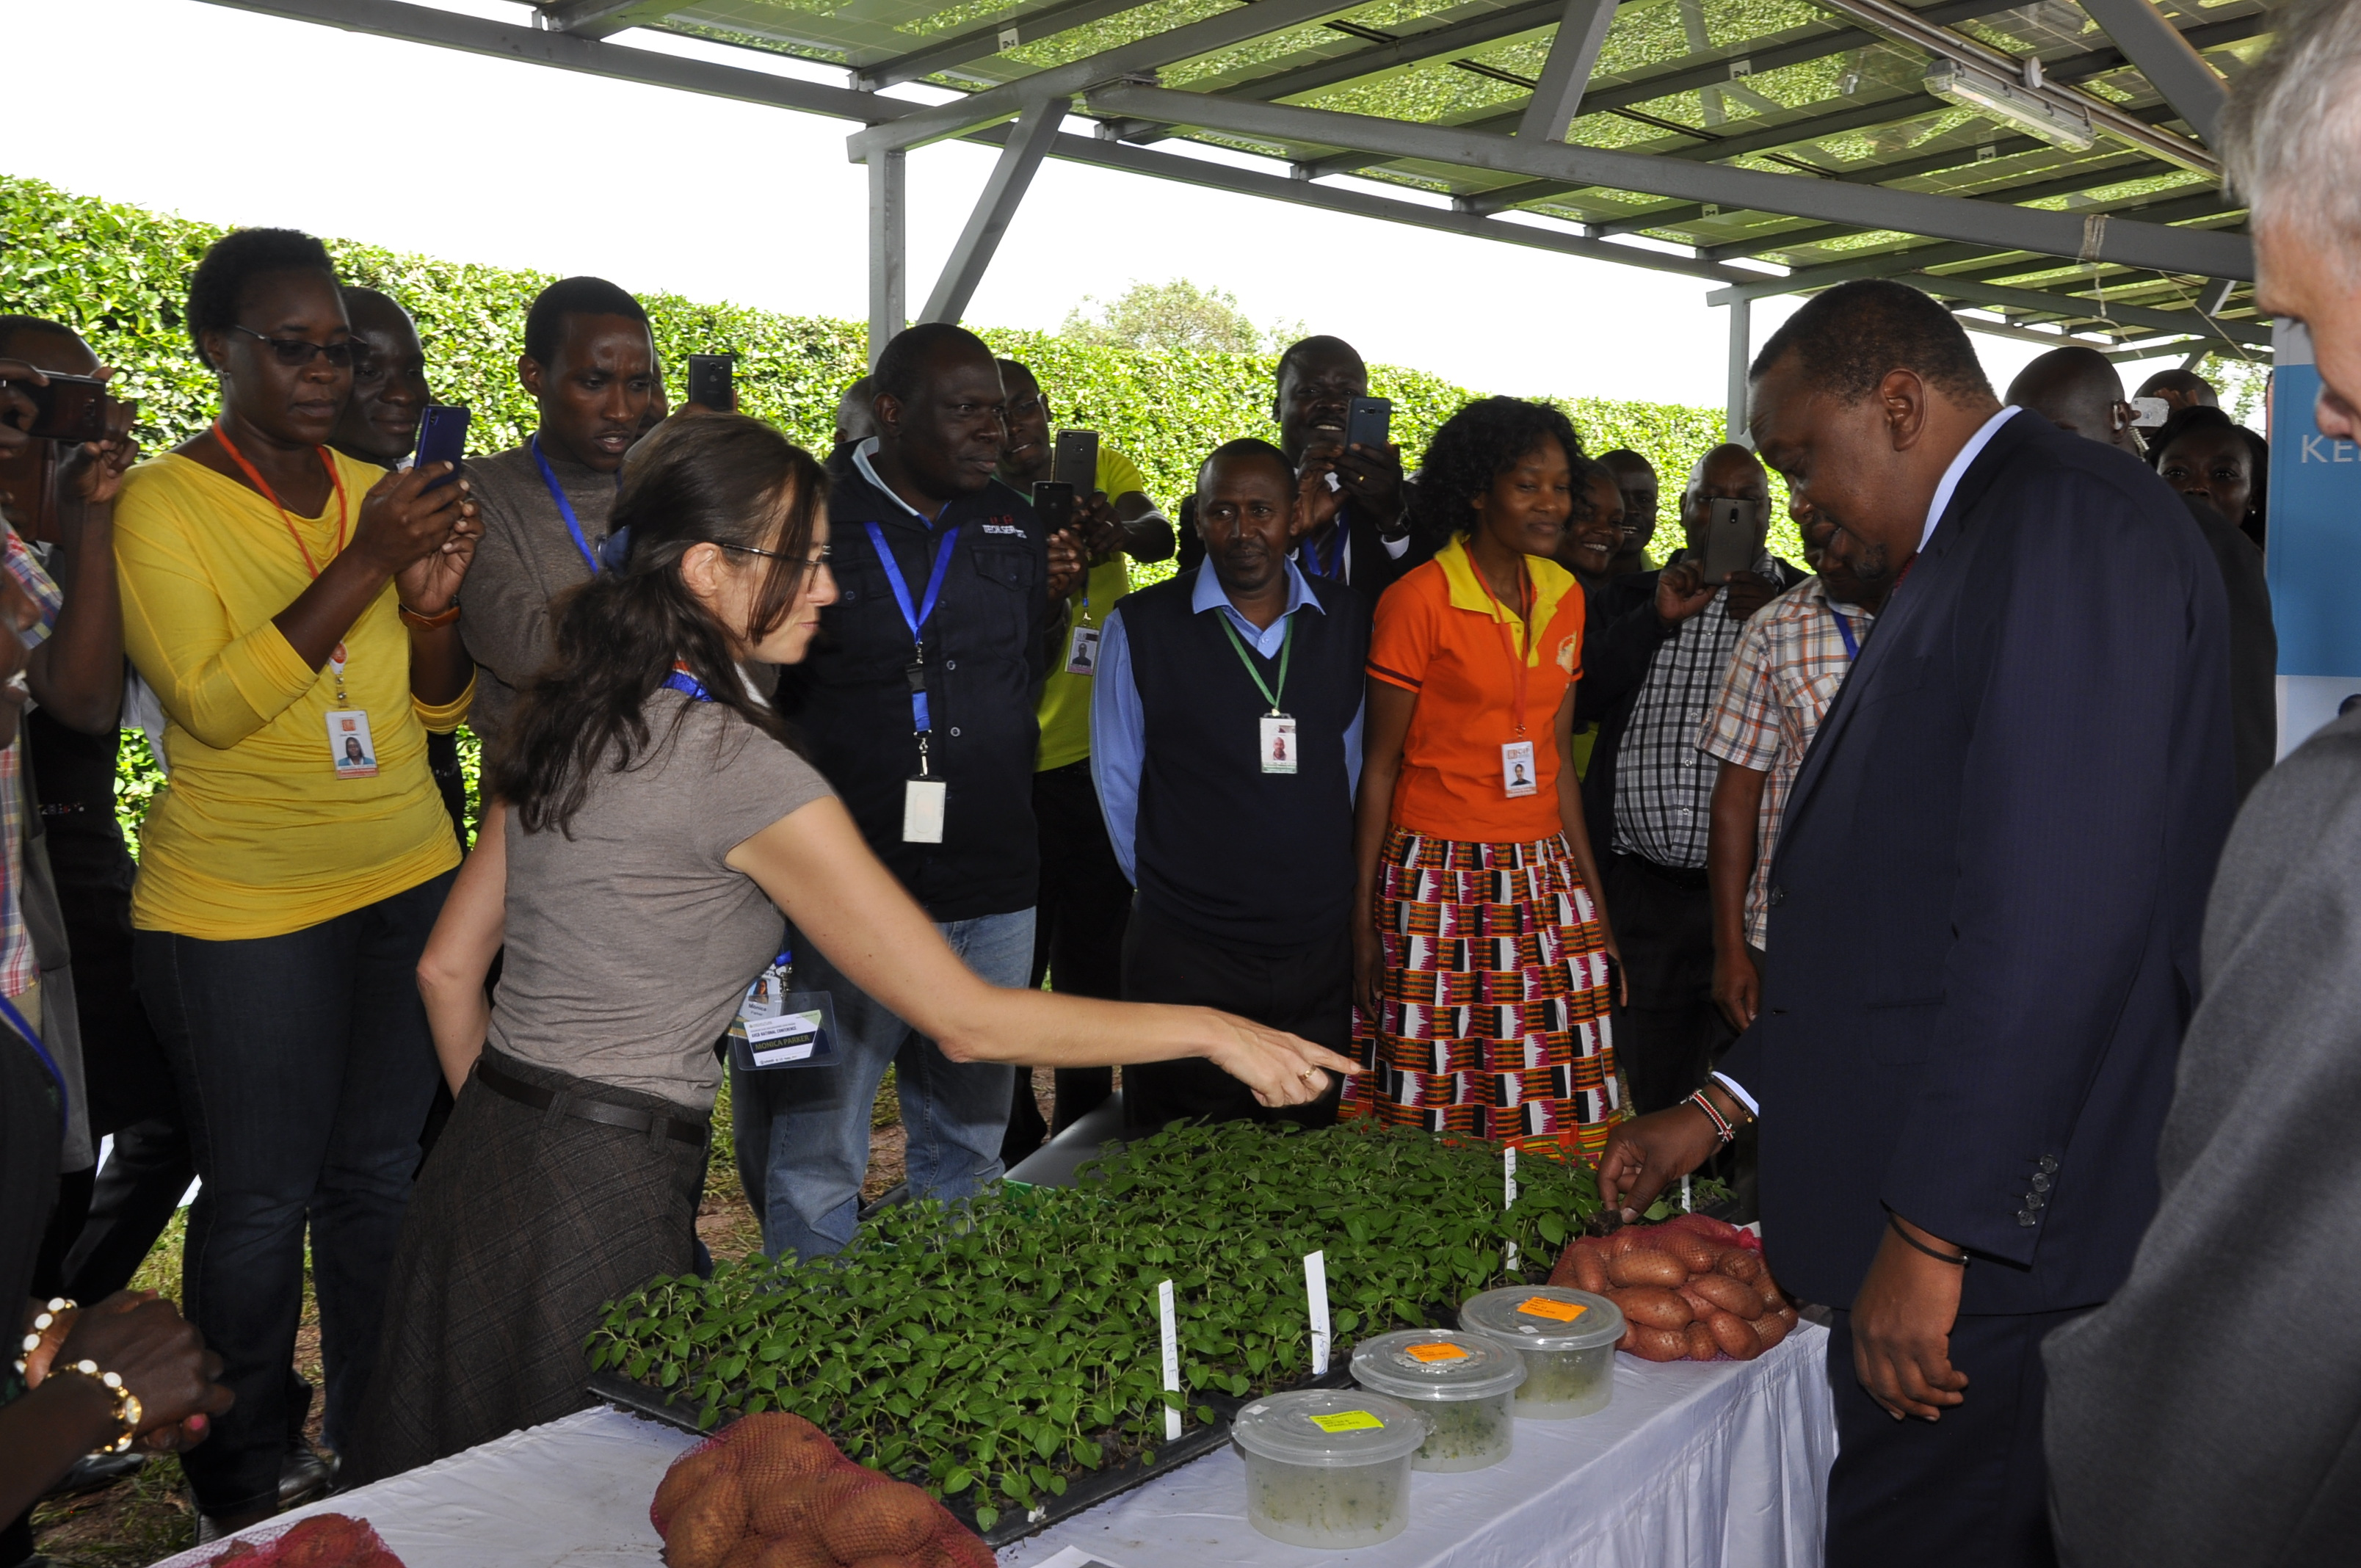 President Uhuru Kenyatta learns about apical cuttings and how they complement the potato seed system from CIP scientist Monica Parker.